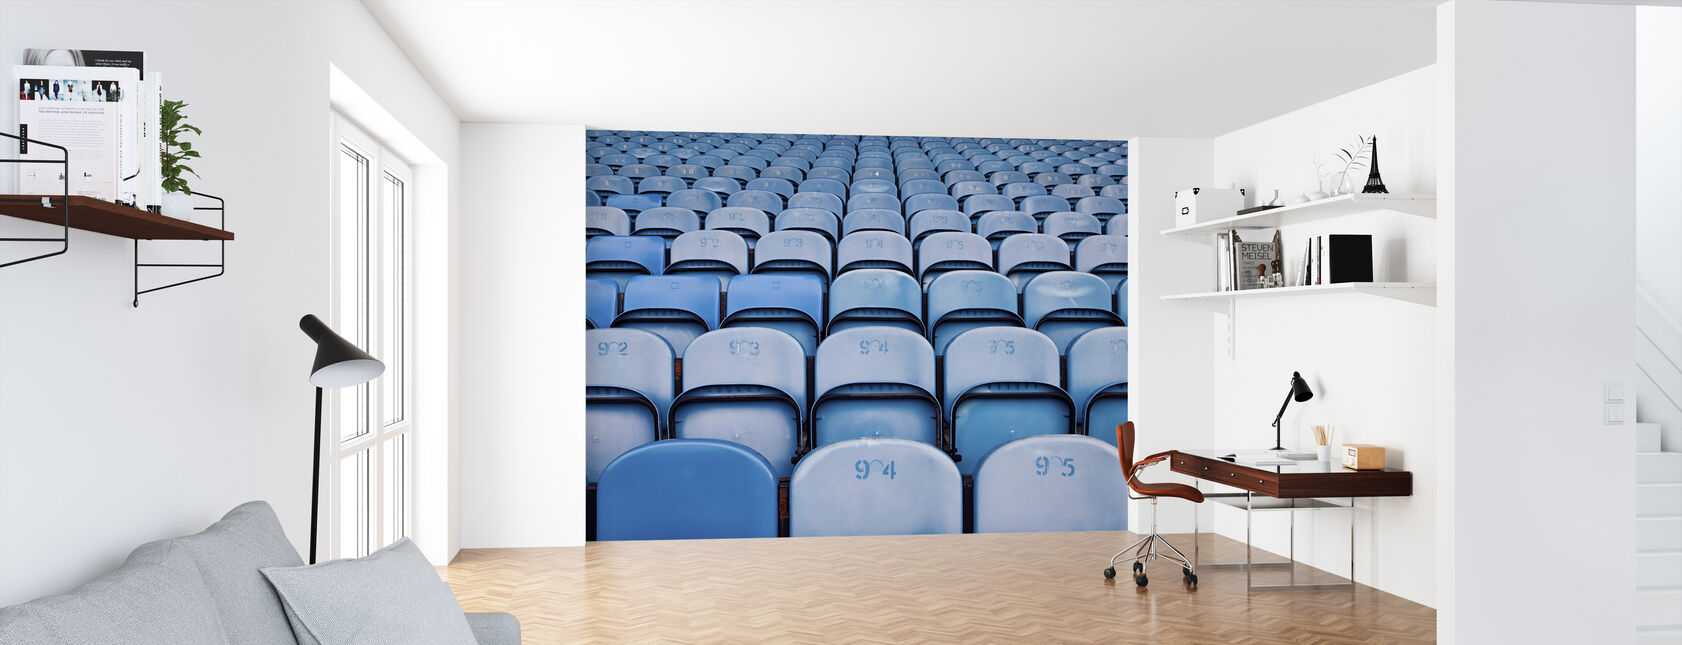 Blue Lighter Chairs - Wallpaper - Office